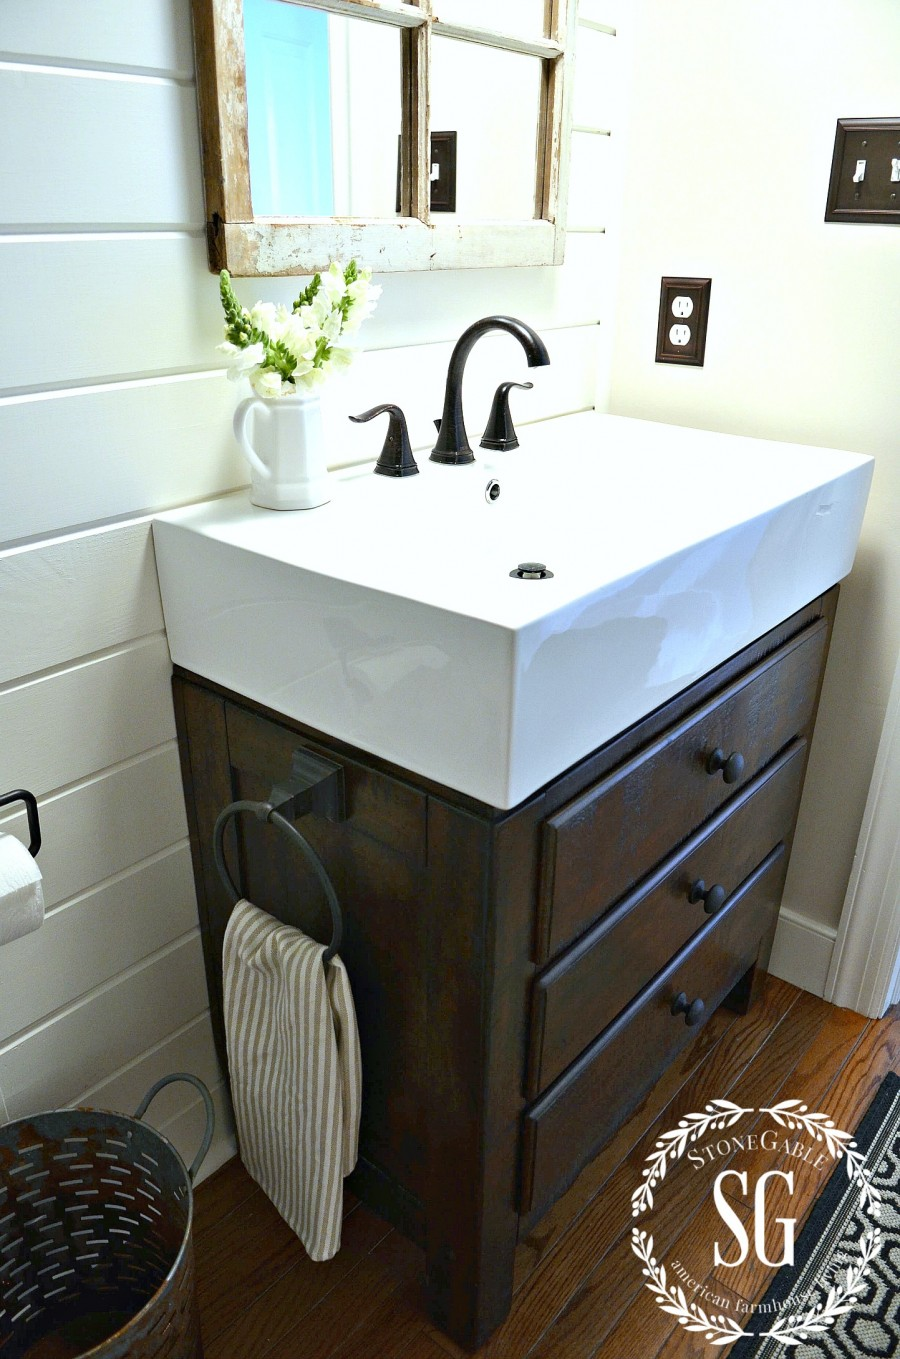 FARMHOUSE POWDER ROOM REVEAL-farmhouse sink-stonegableblog.com